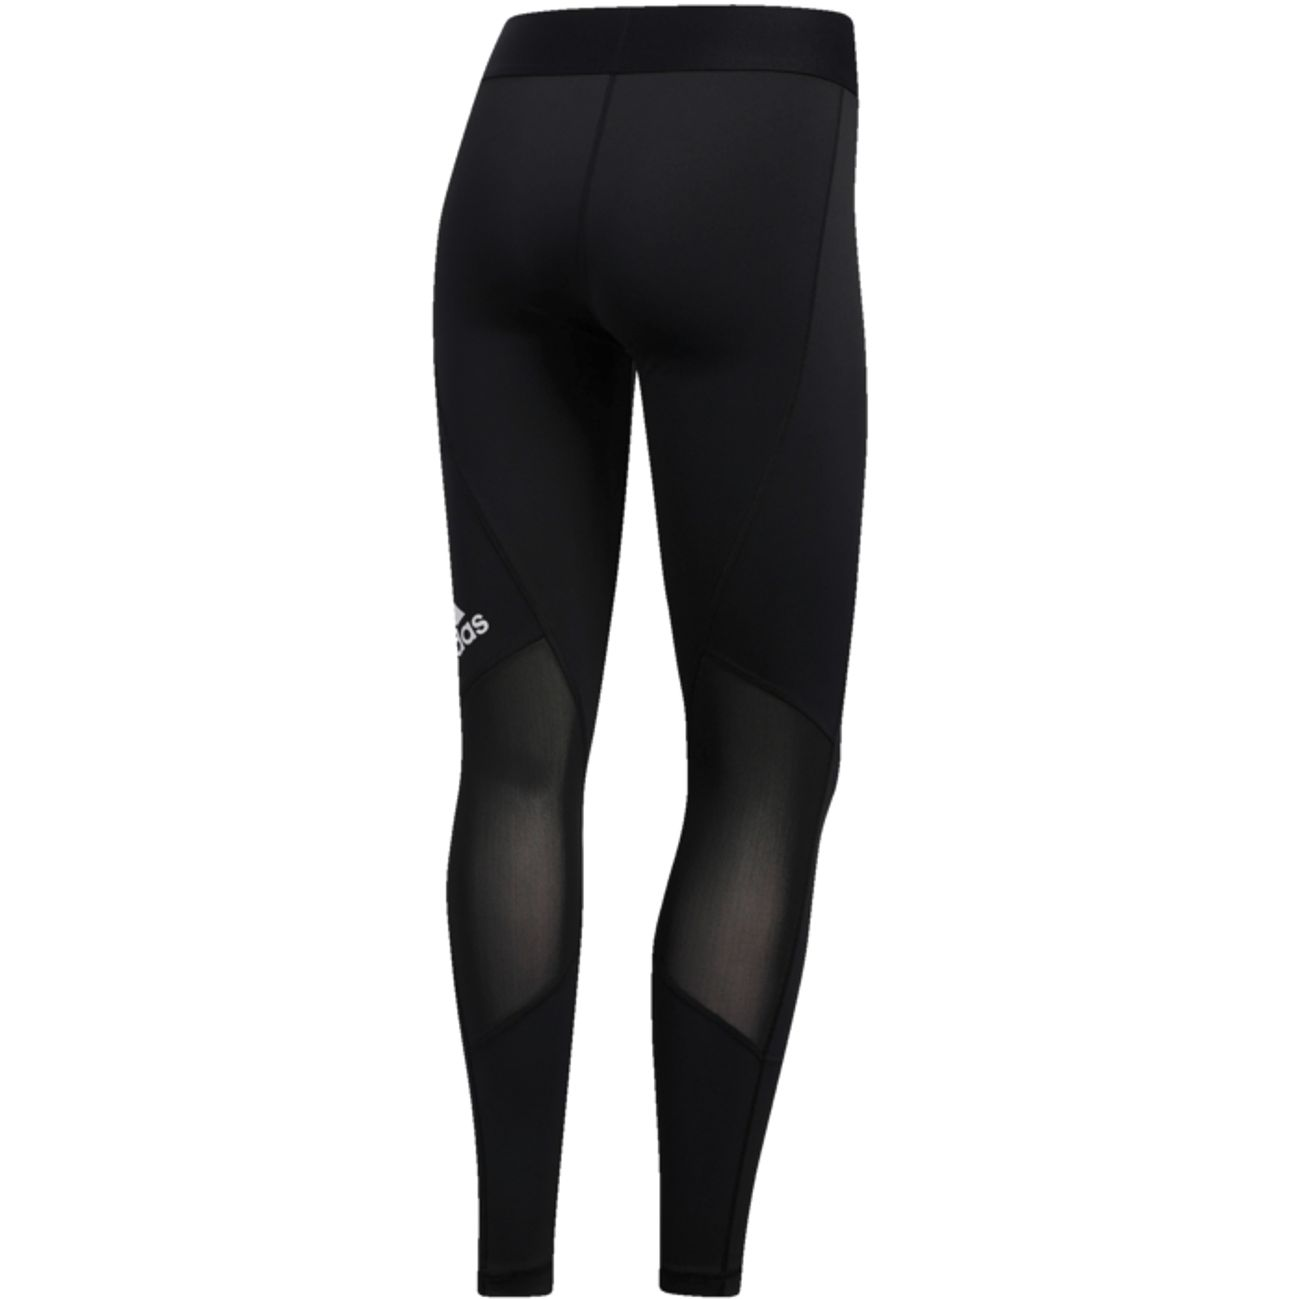 COLLANT Fitness femme ADIDAS ASK SP LONG